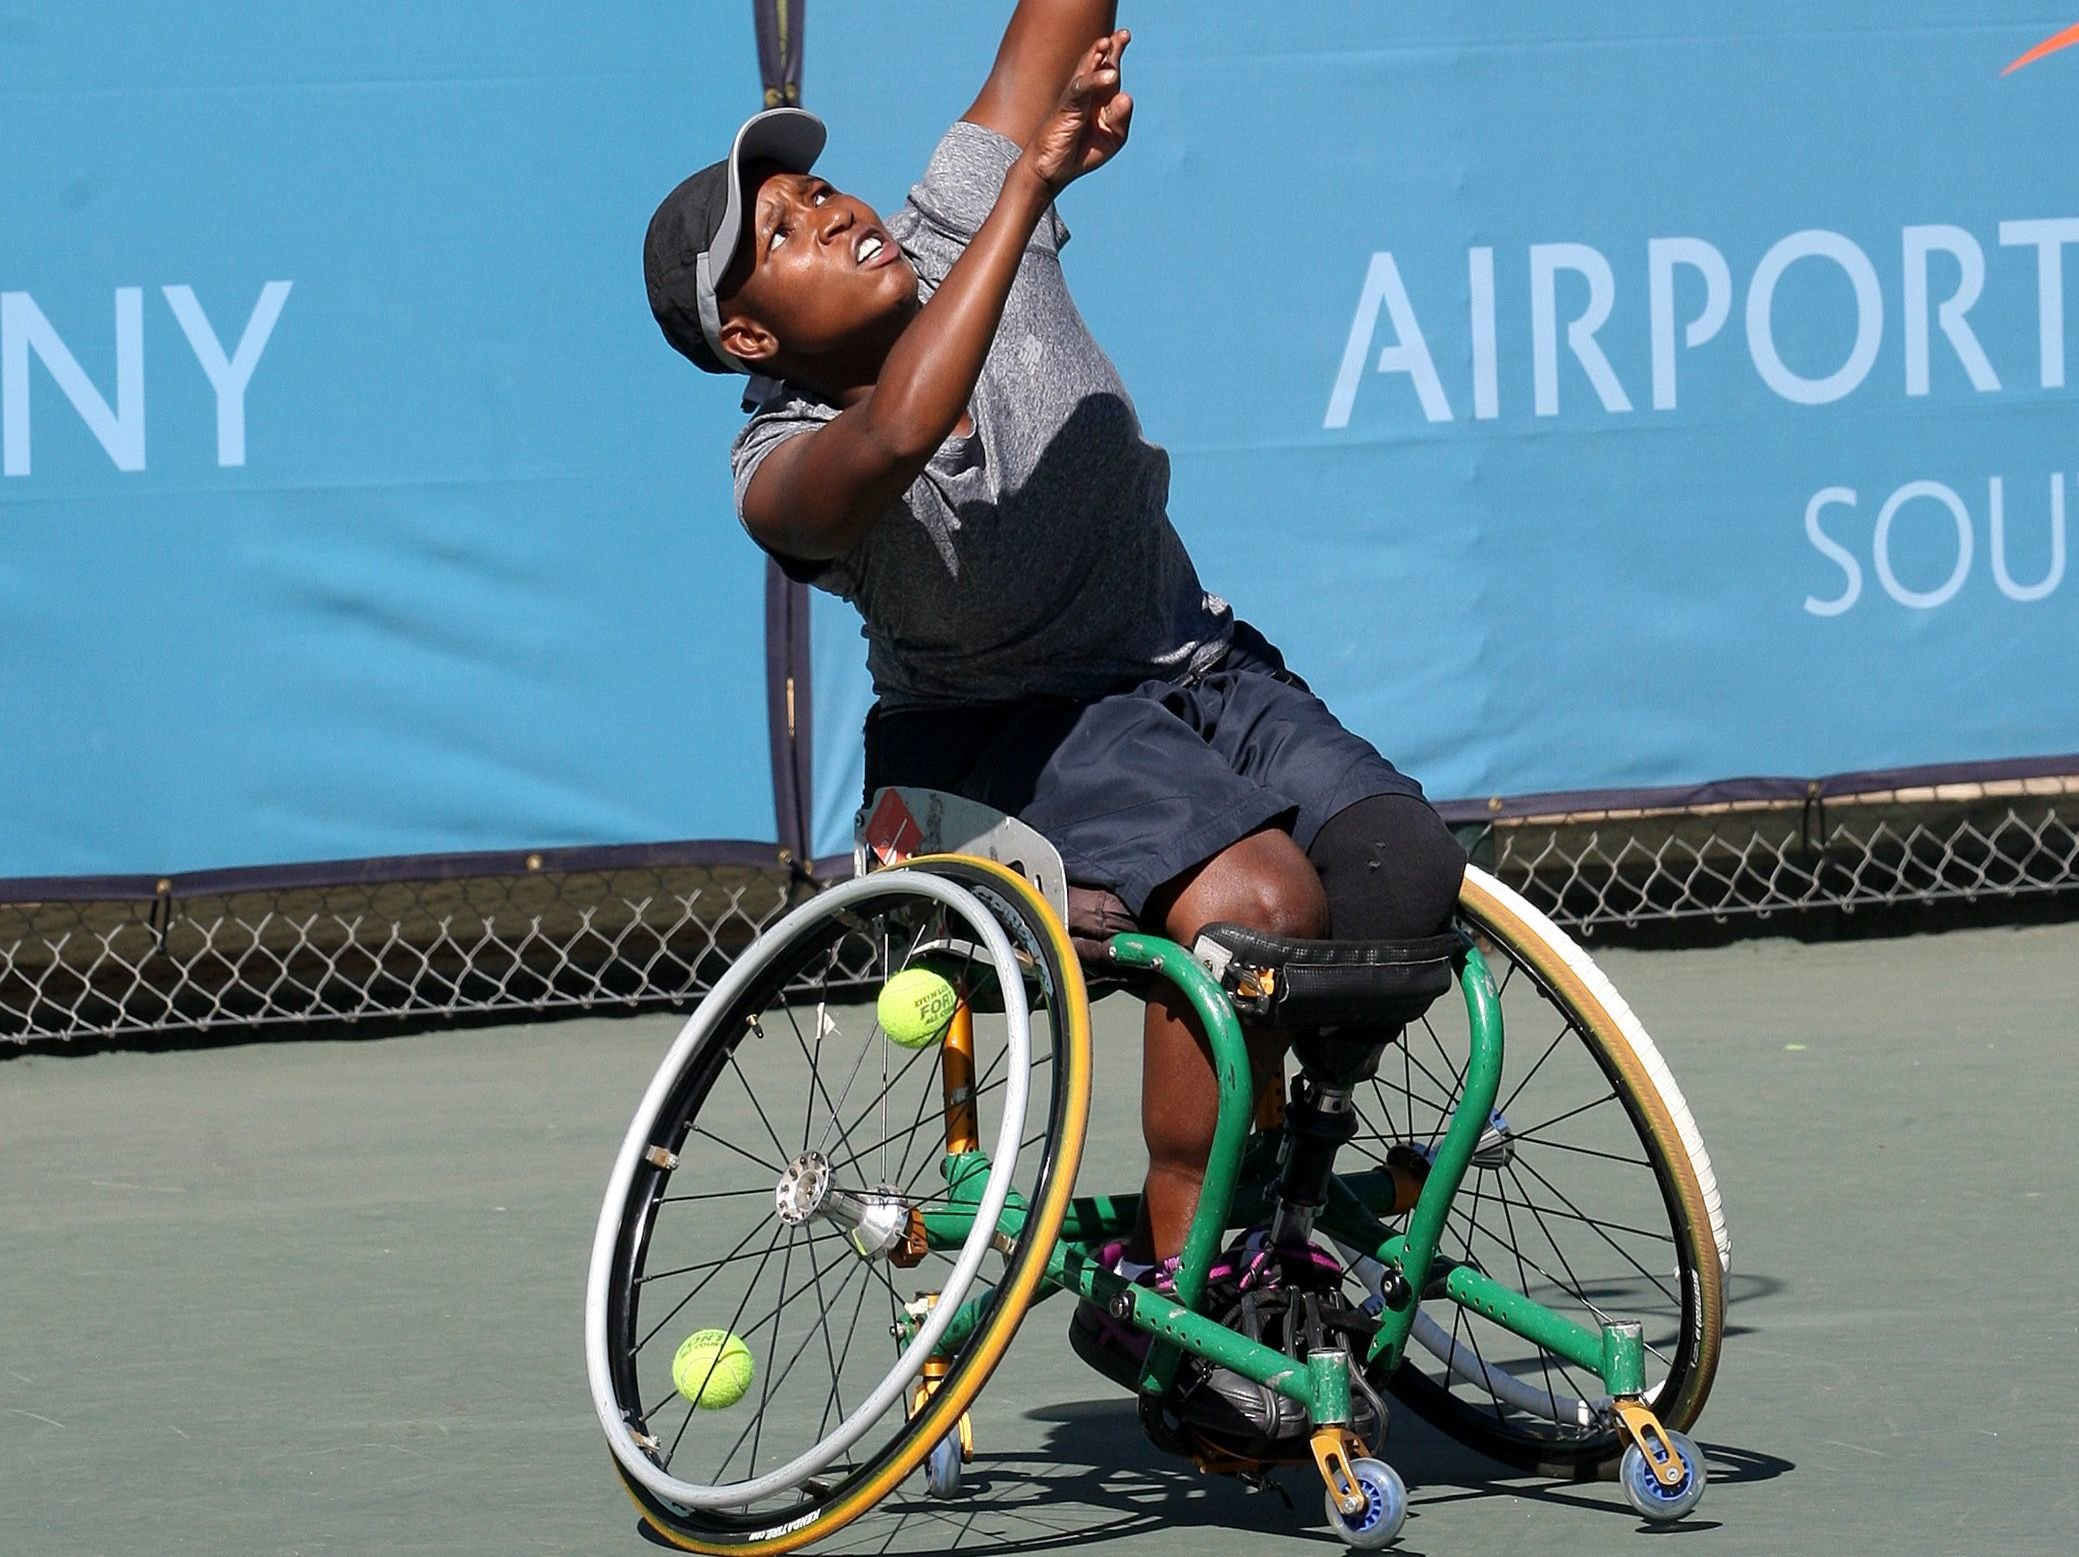 Montjane is all smiles after Swiss Open win